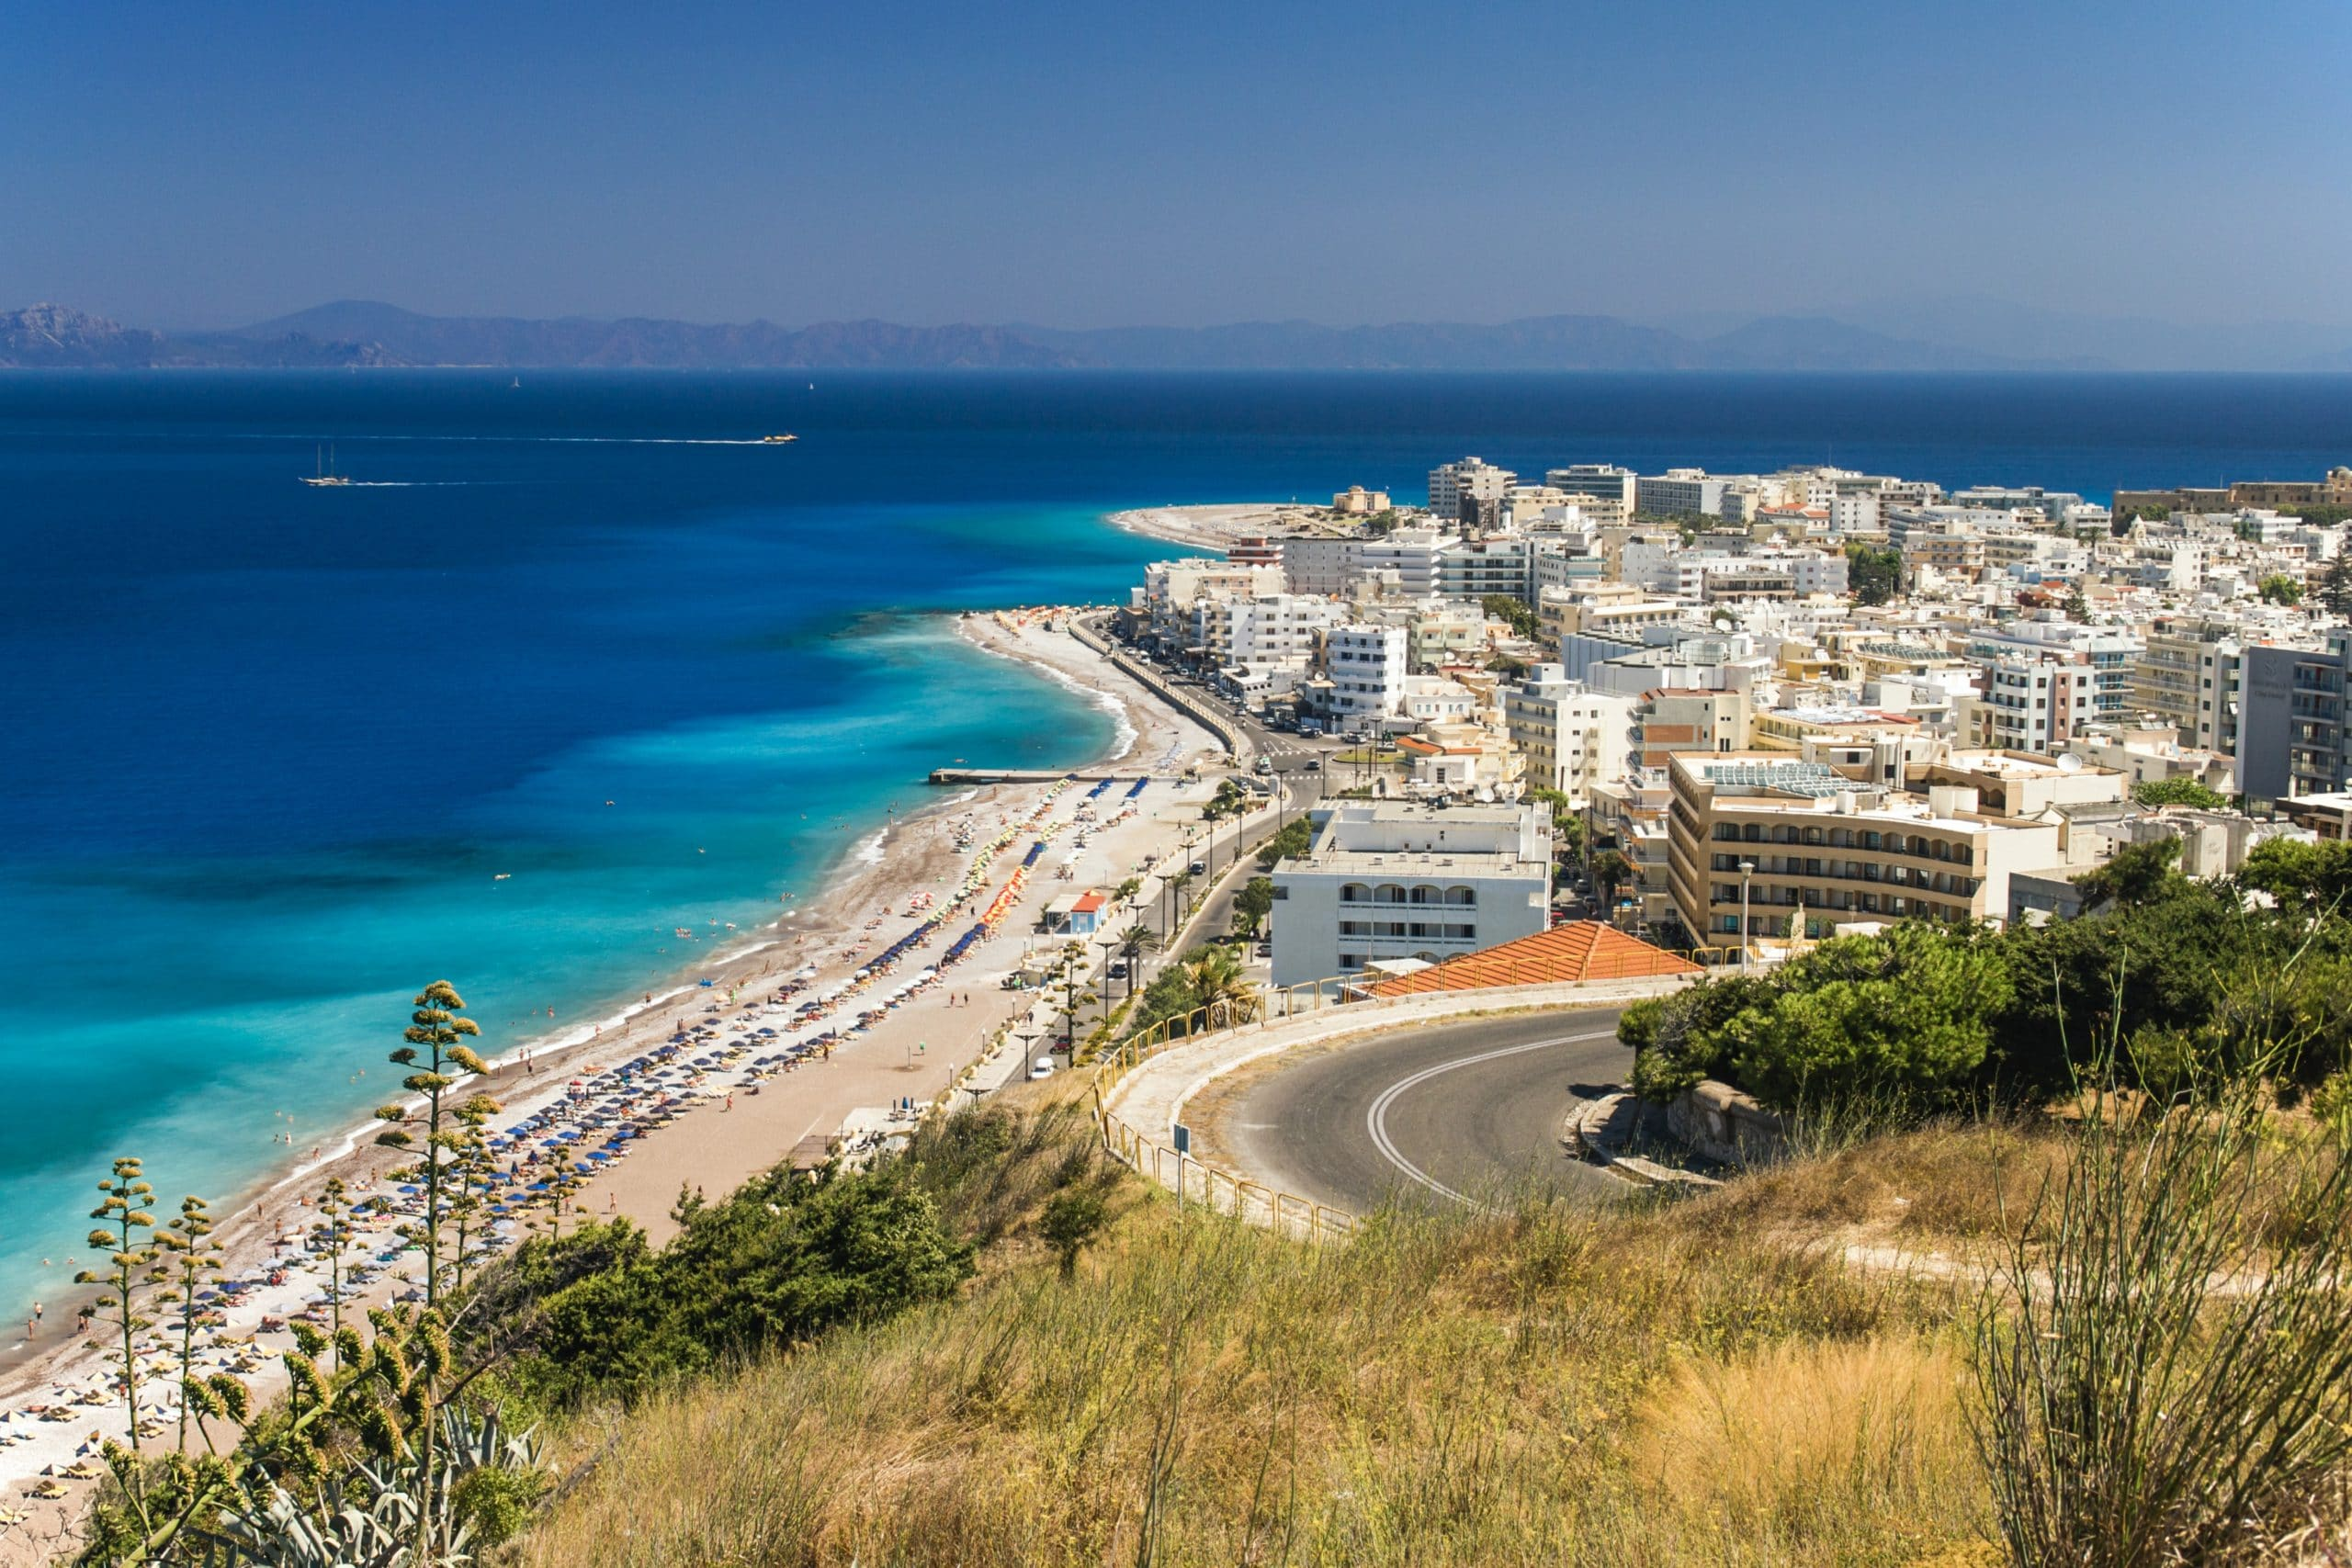 Rent a car in Rhodes? The definitive guide with 3 Pros and Cons to Help You Decide.